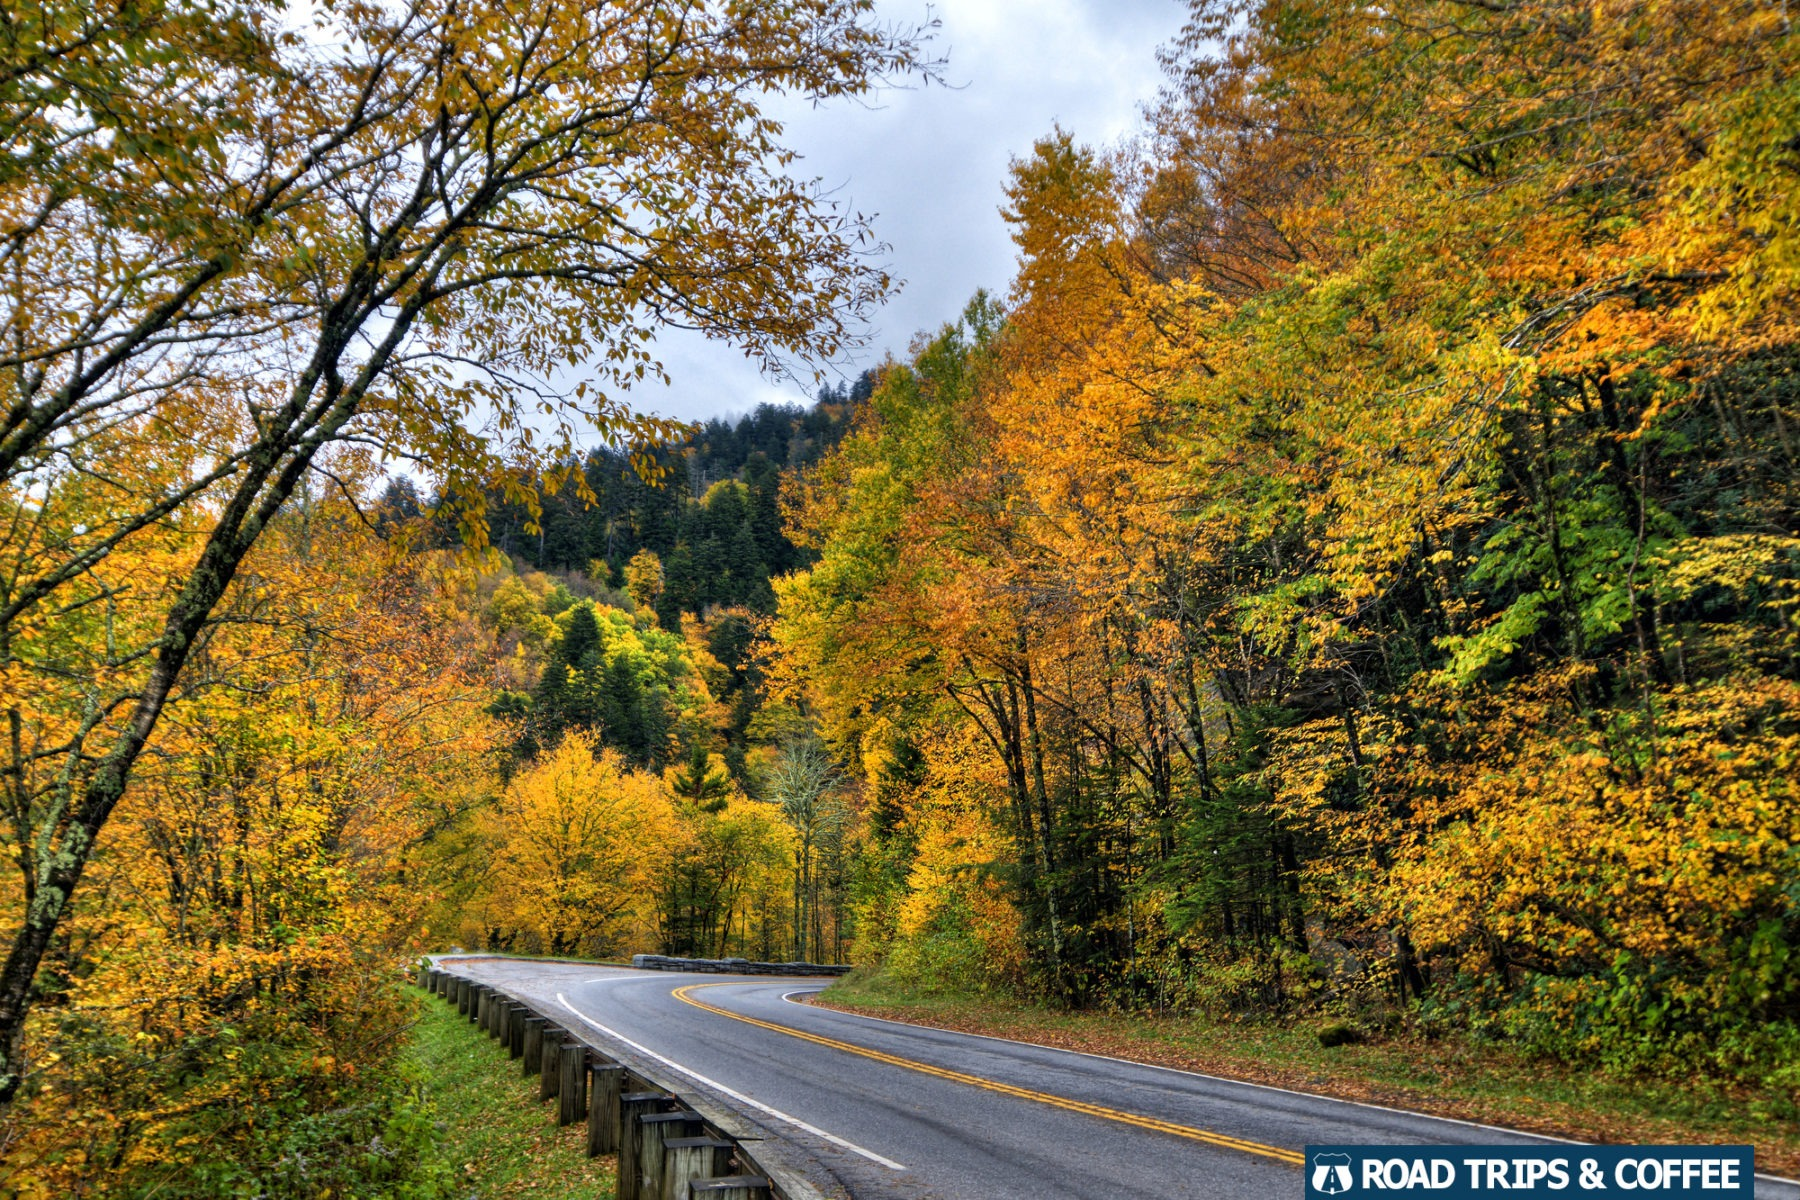 Vibrant fall colors along Newfound Gap Road in the Great Smoky Mountains National Park